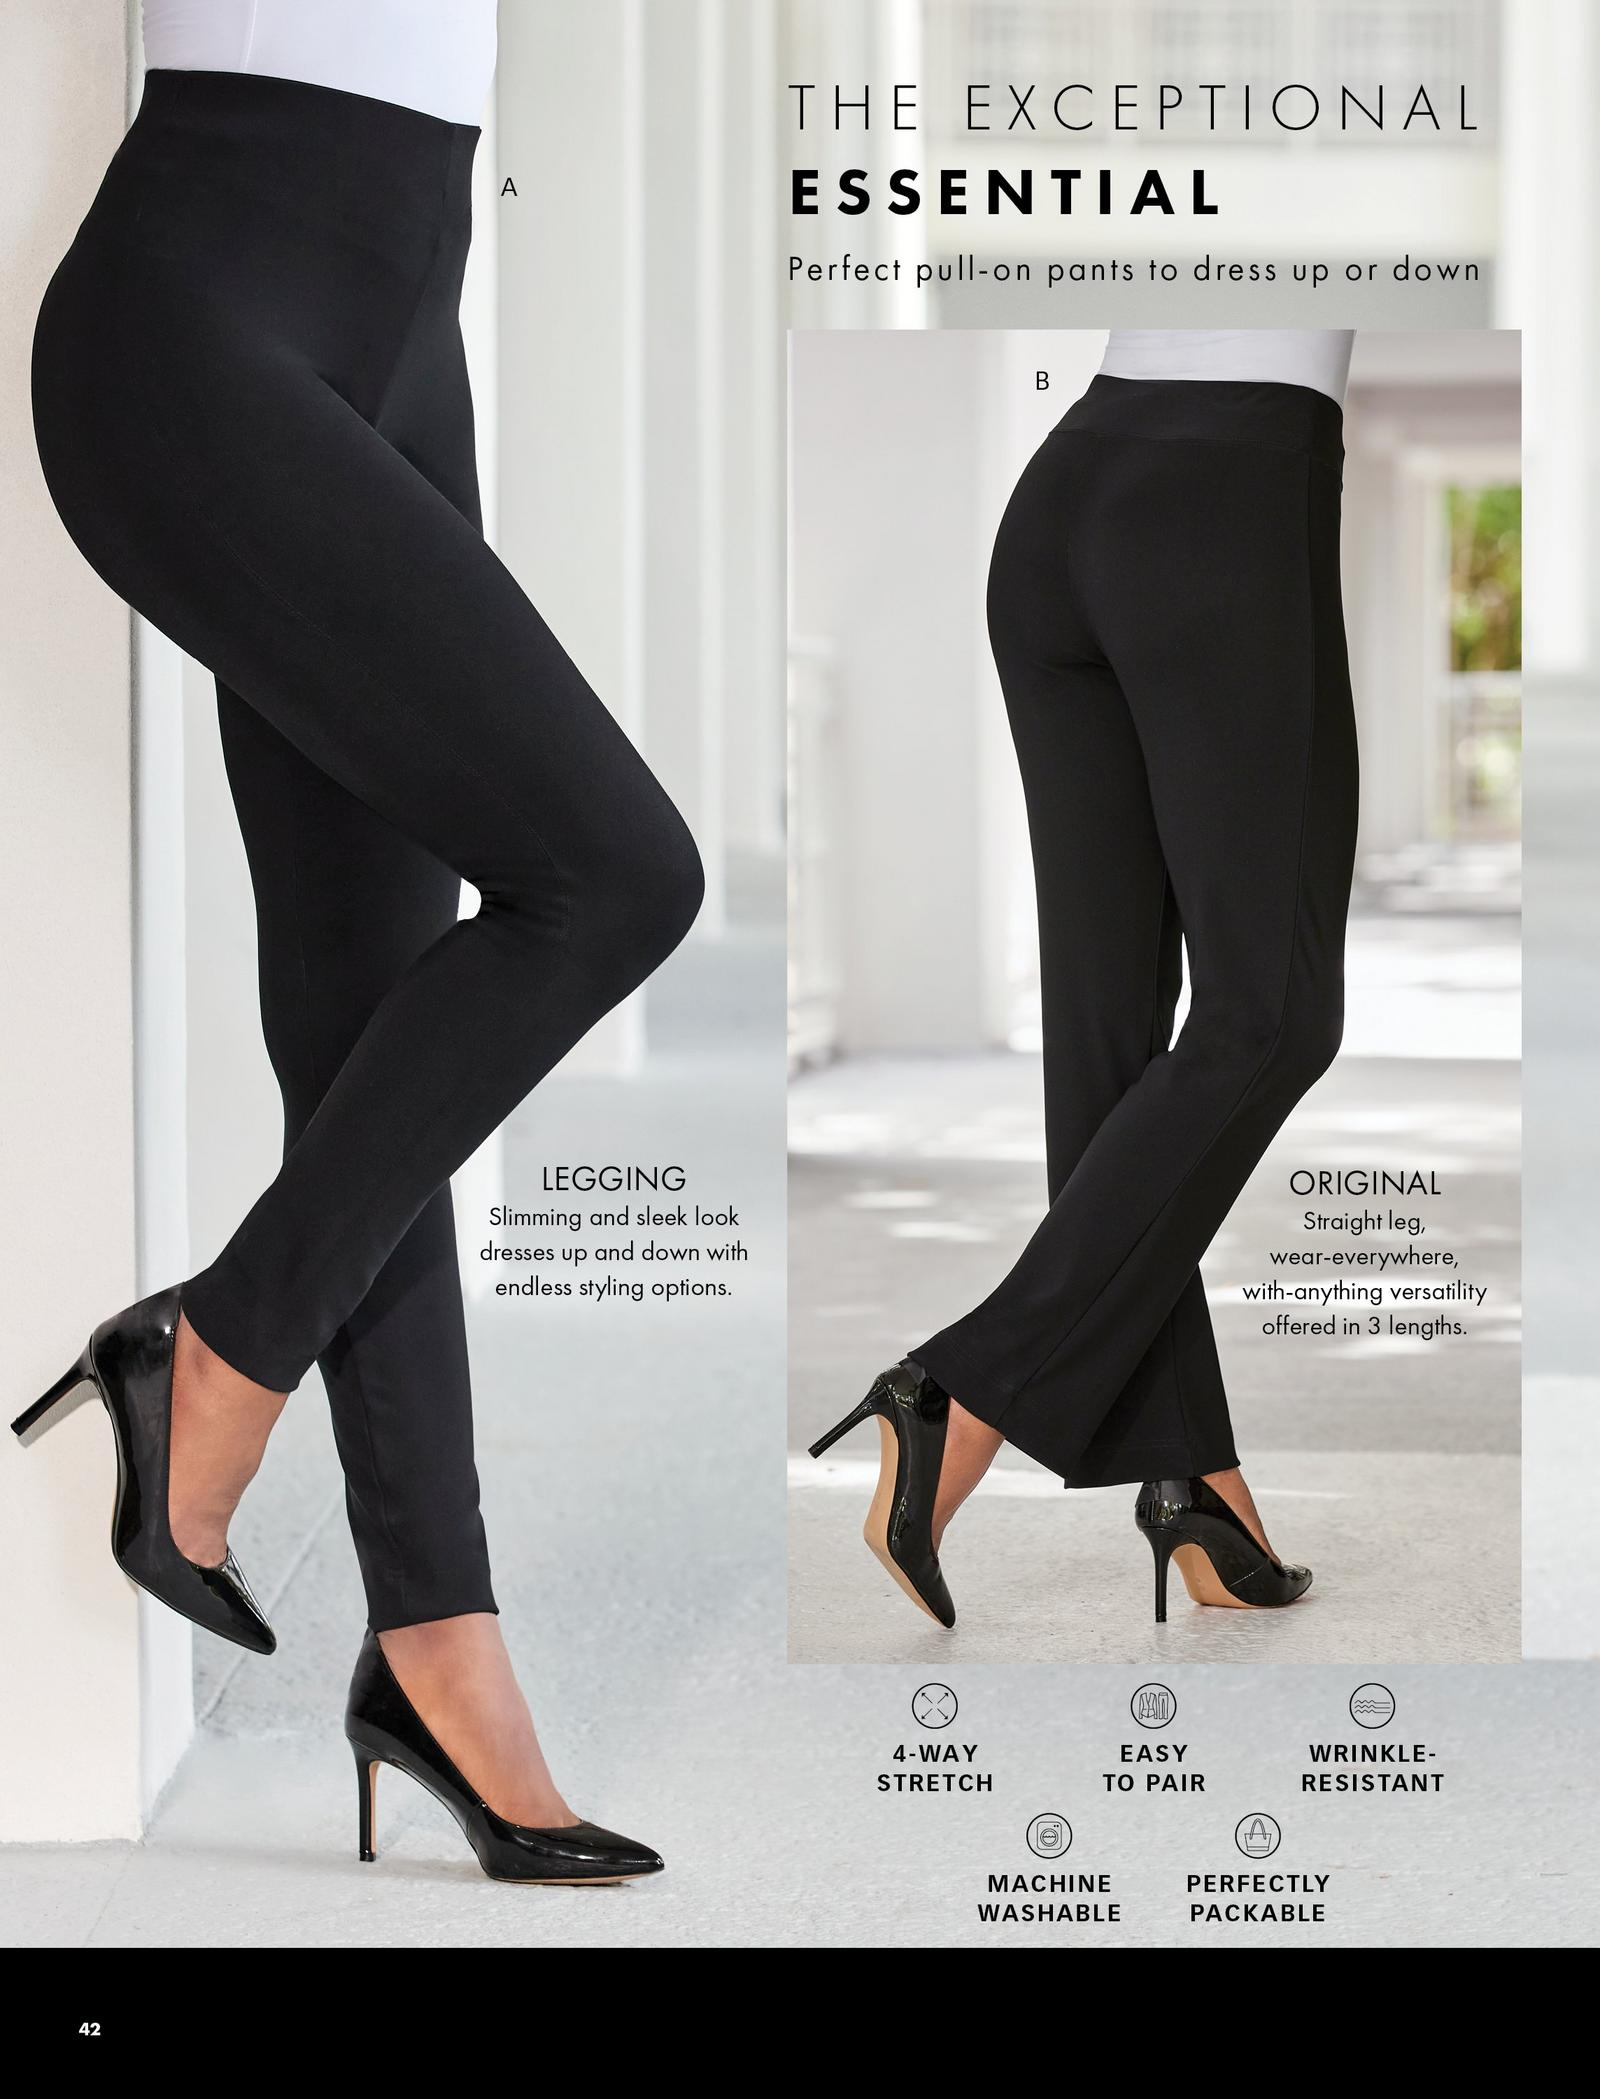 left model wearing black leggings, white top, and black pumps. right model wearing black pants, black pumps, and white top.